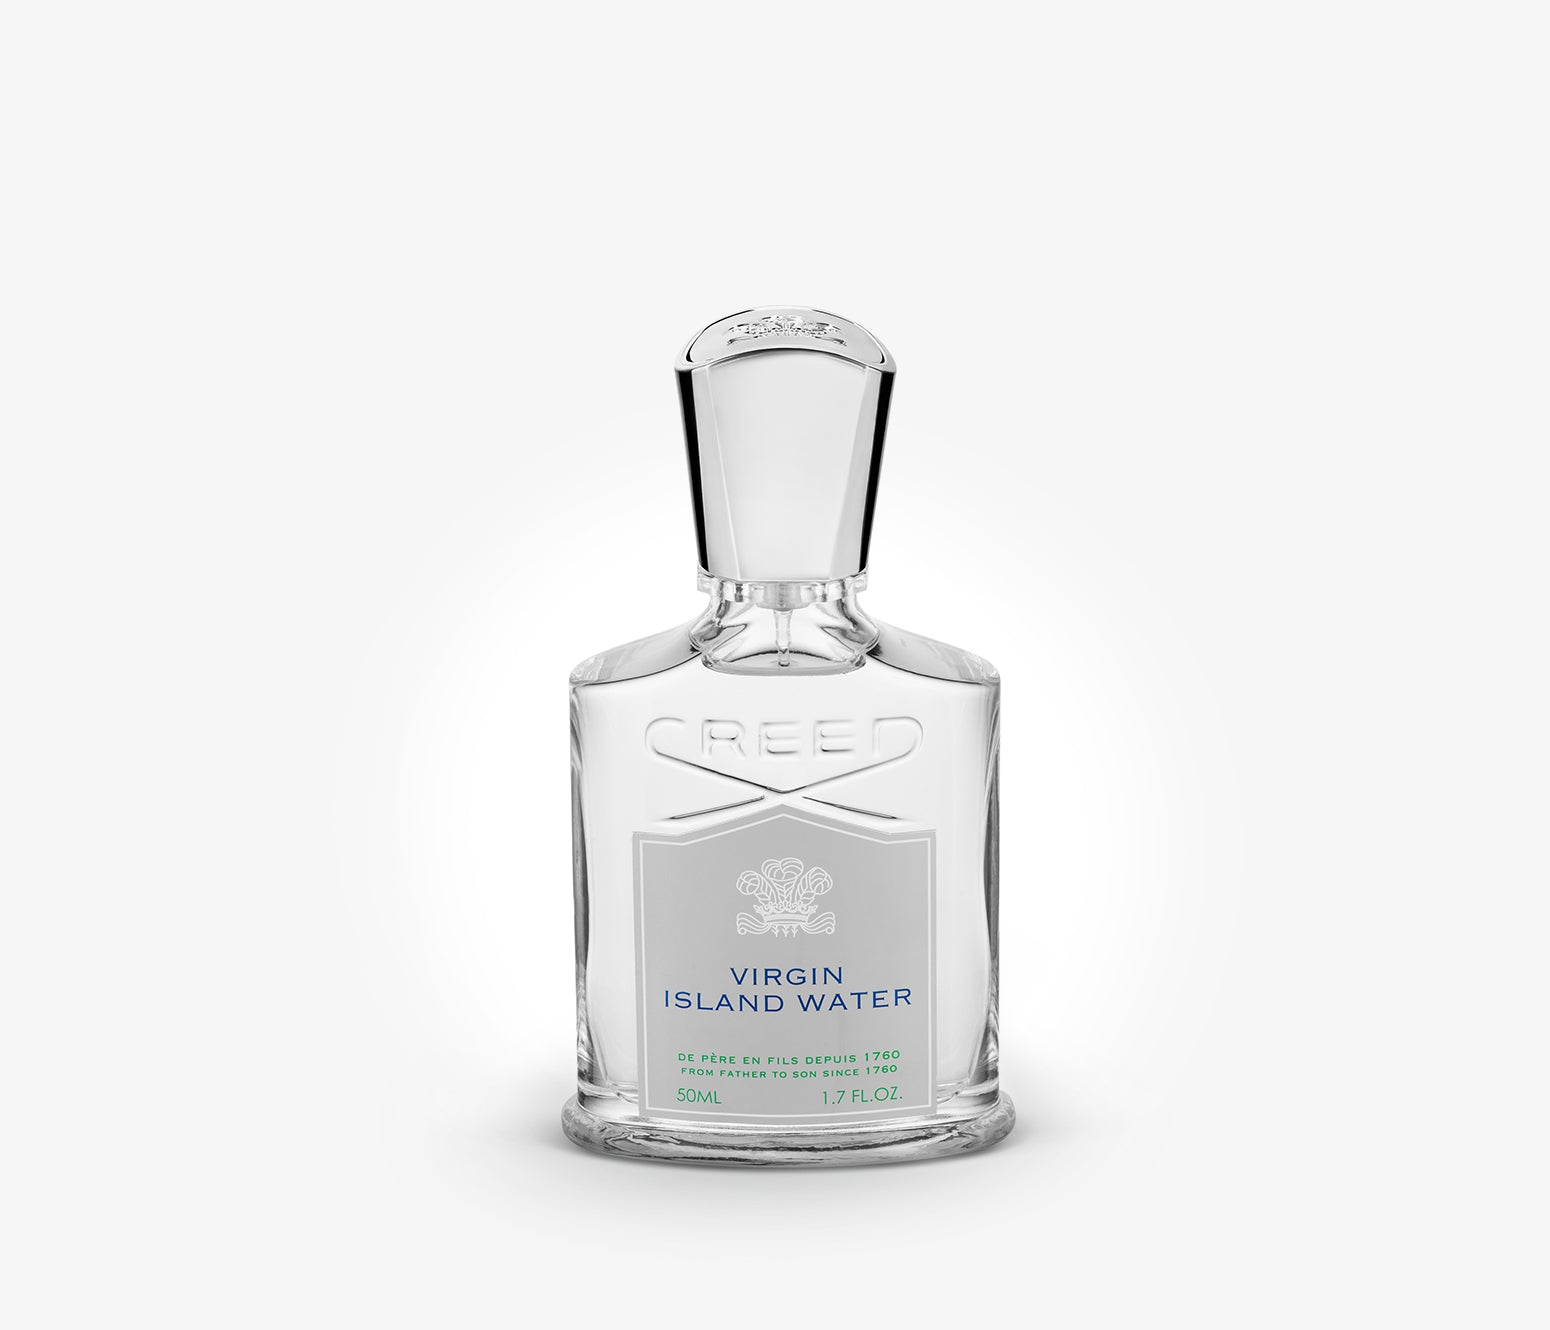 Creed - Virgin Island Water - 100ml - HTF001 - product image - Fragrance - Les Senteurs